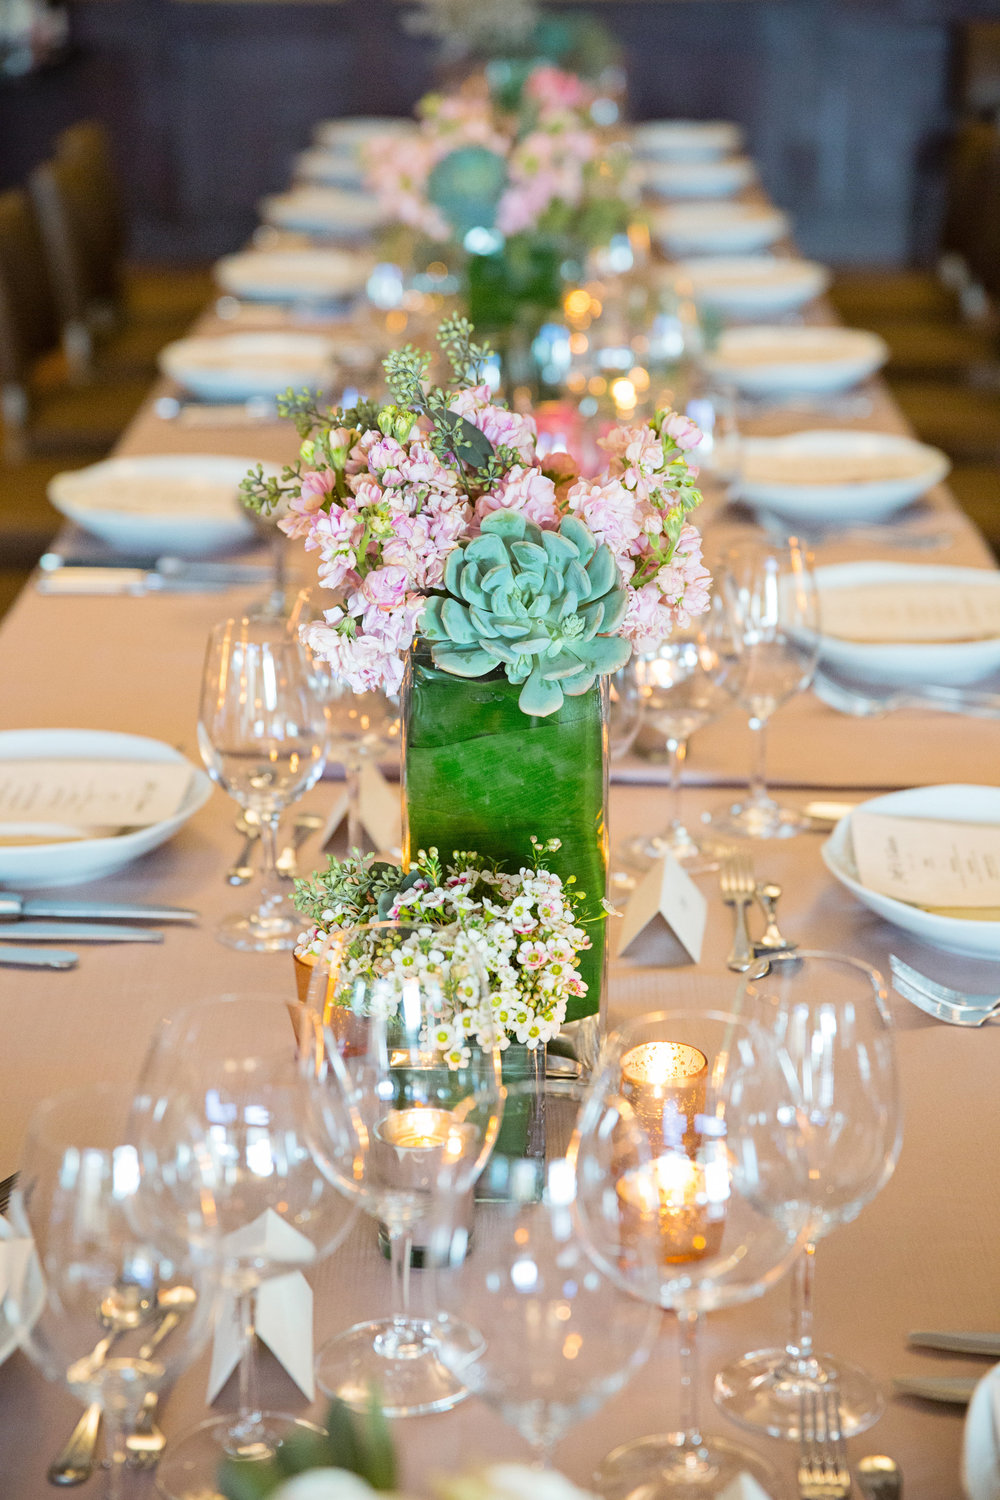 Arizona wedding, Camelback Mountain wedding, pink flowers, pink bouquet, pink wedding bouquet, protea, roses, succulents, desert inspired bridal bouquet, wedding reception table; family style table